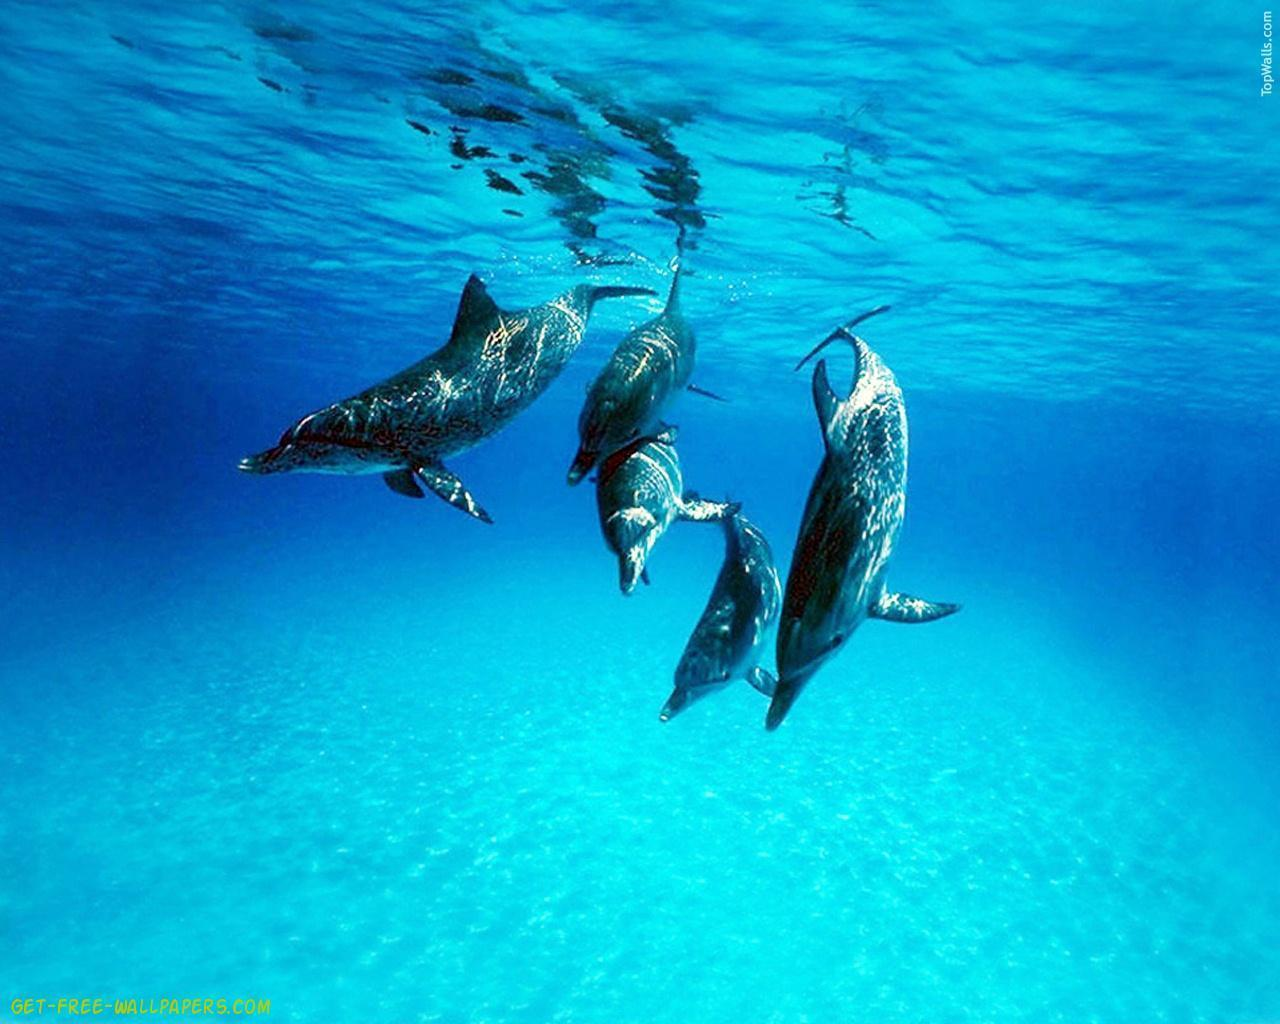 Download Dolphin Wallpaper Full Hd Wallpapers 1280x1024PX ...